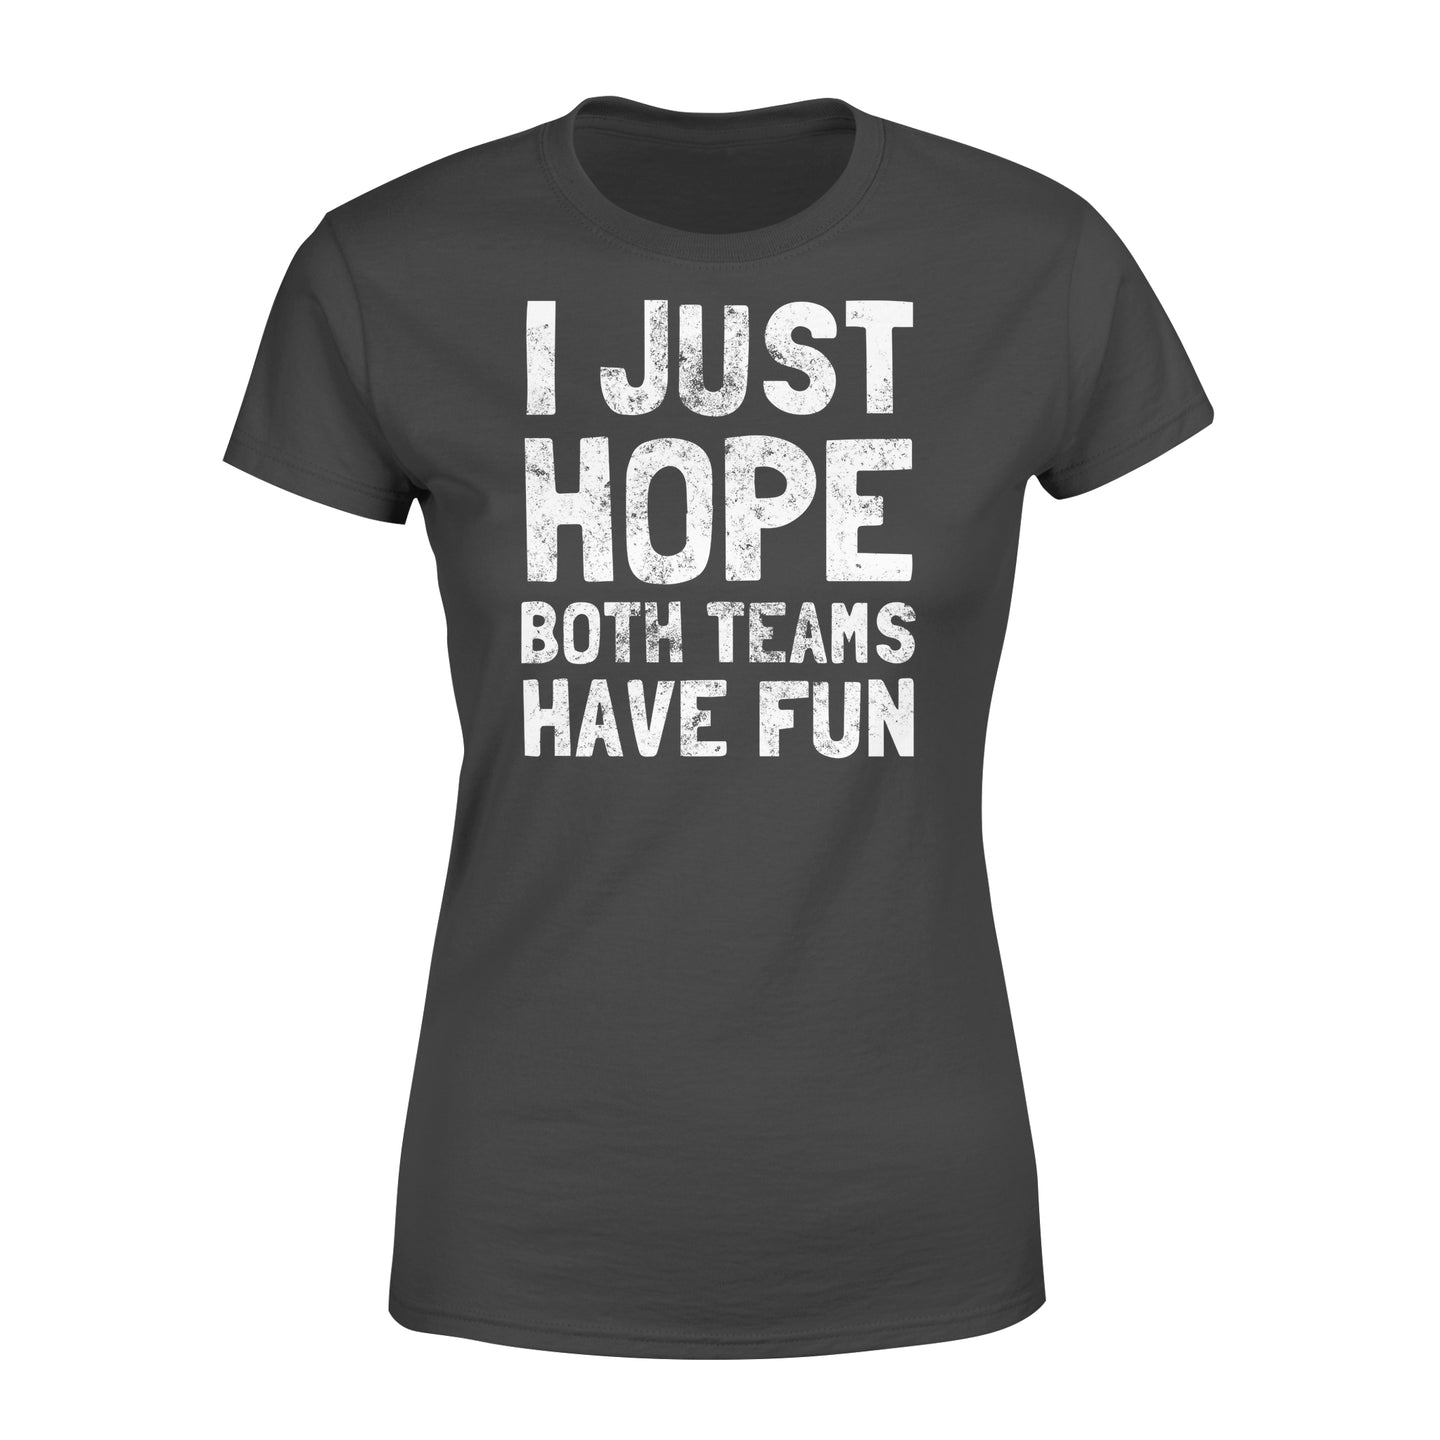 Funny I Just Hope Both Teams Have Fun - Standard Women's T-shirt Apparel XS / Black